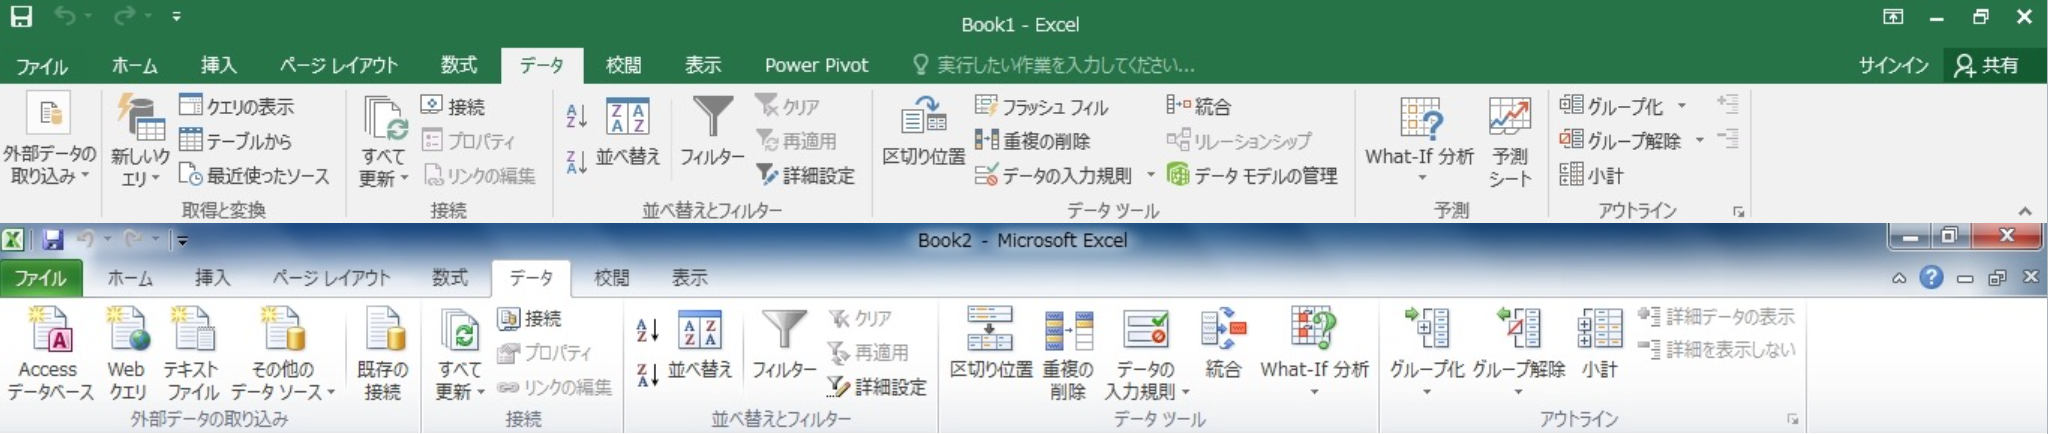 Excel2016とExcel2010のデータタブ